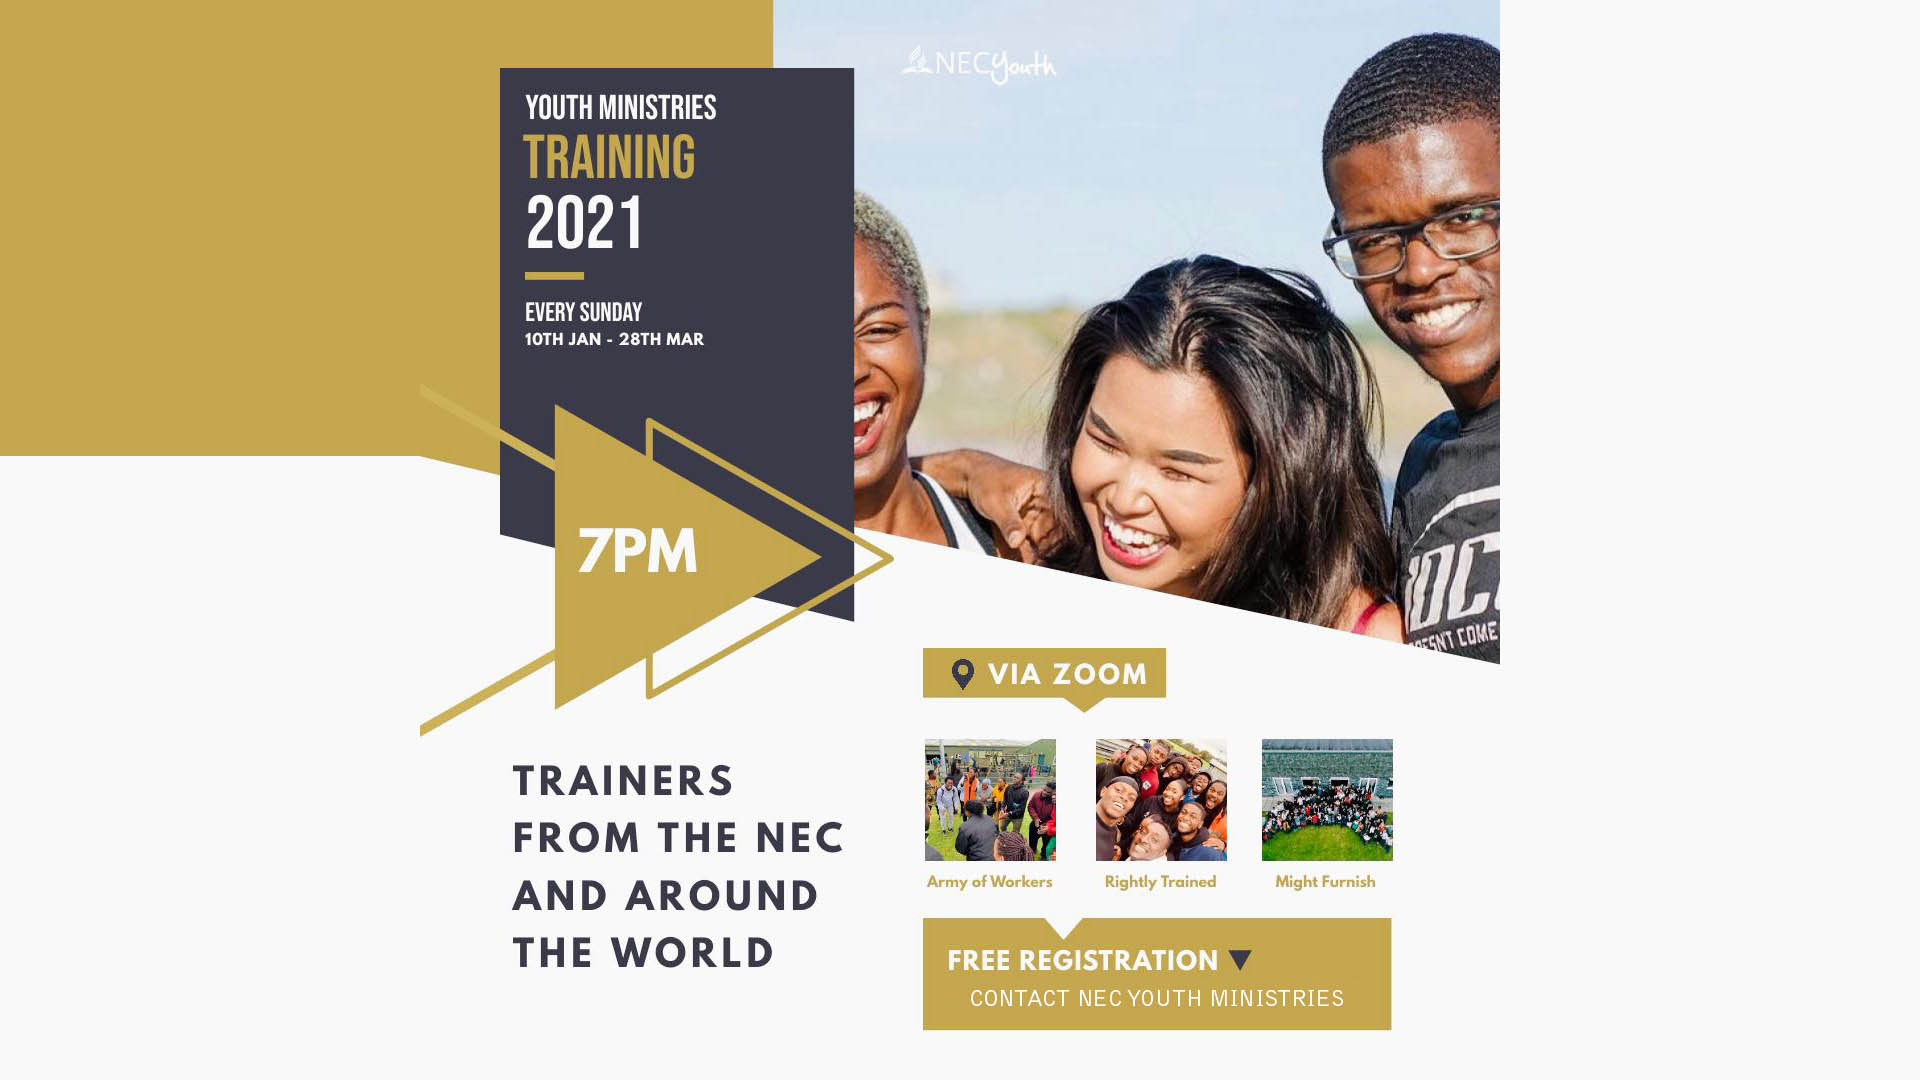 Youth Ministries Training 2021